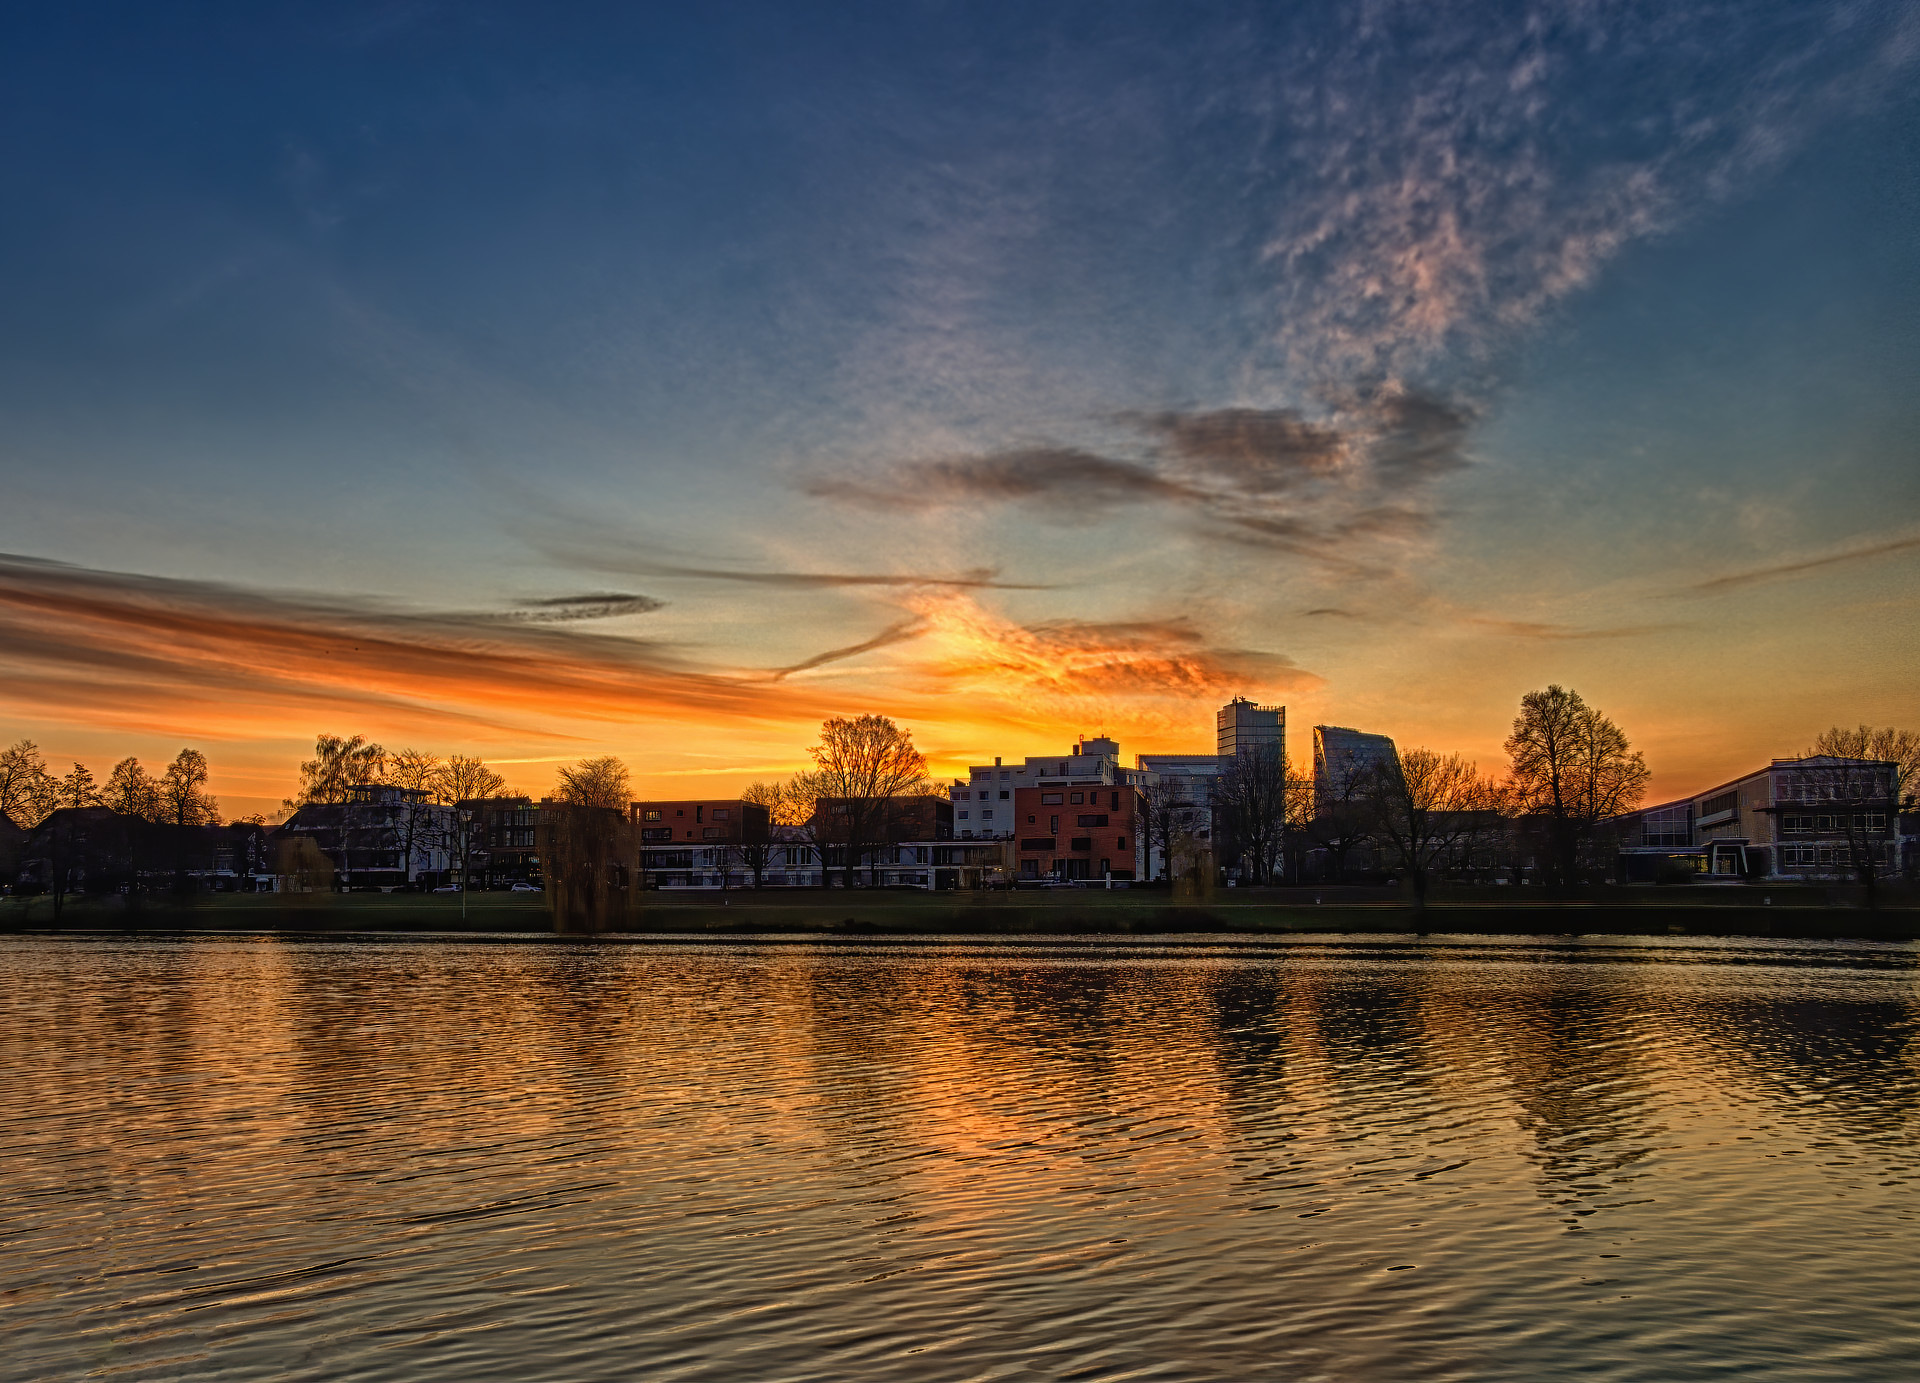 Sonnenaufgang am Aasee_HDR